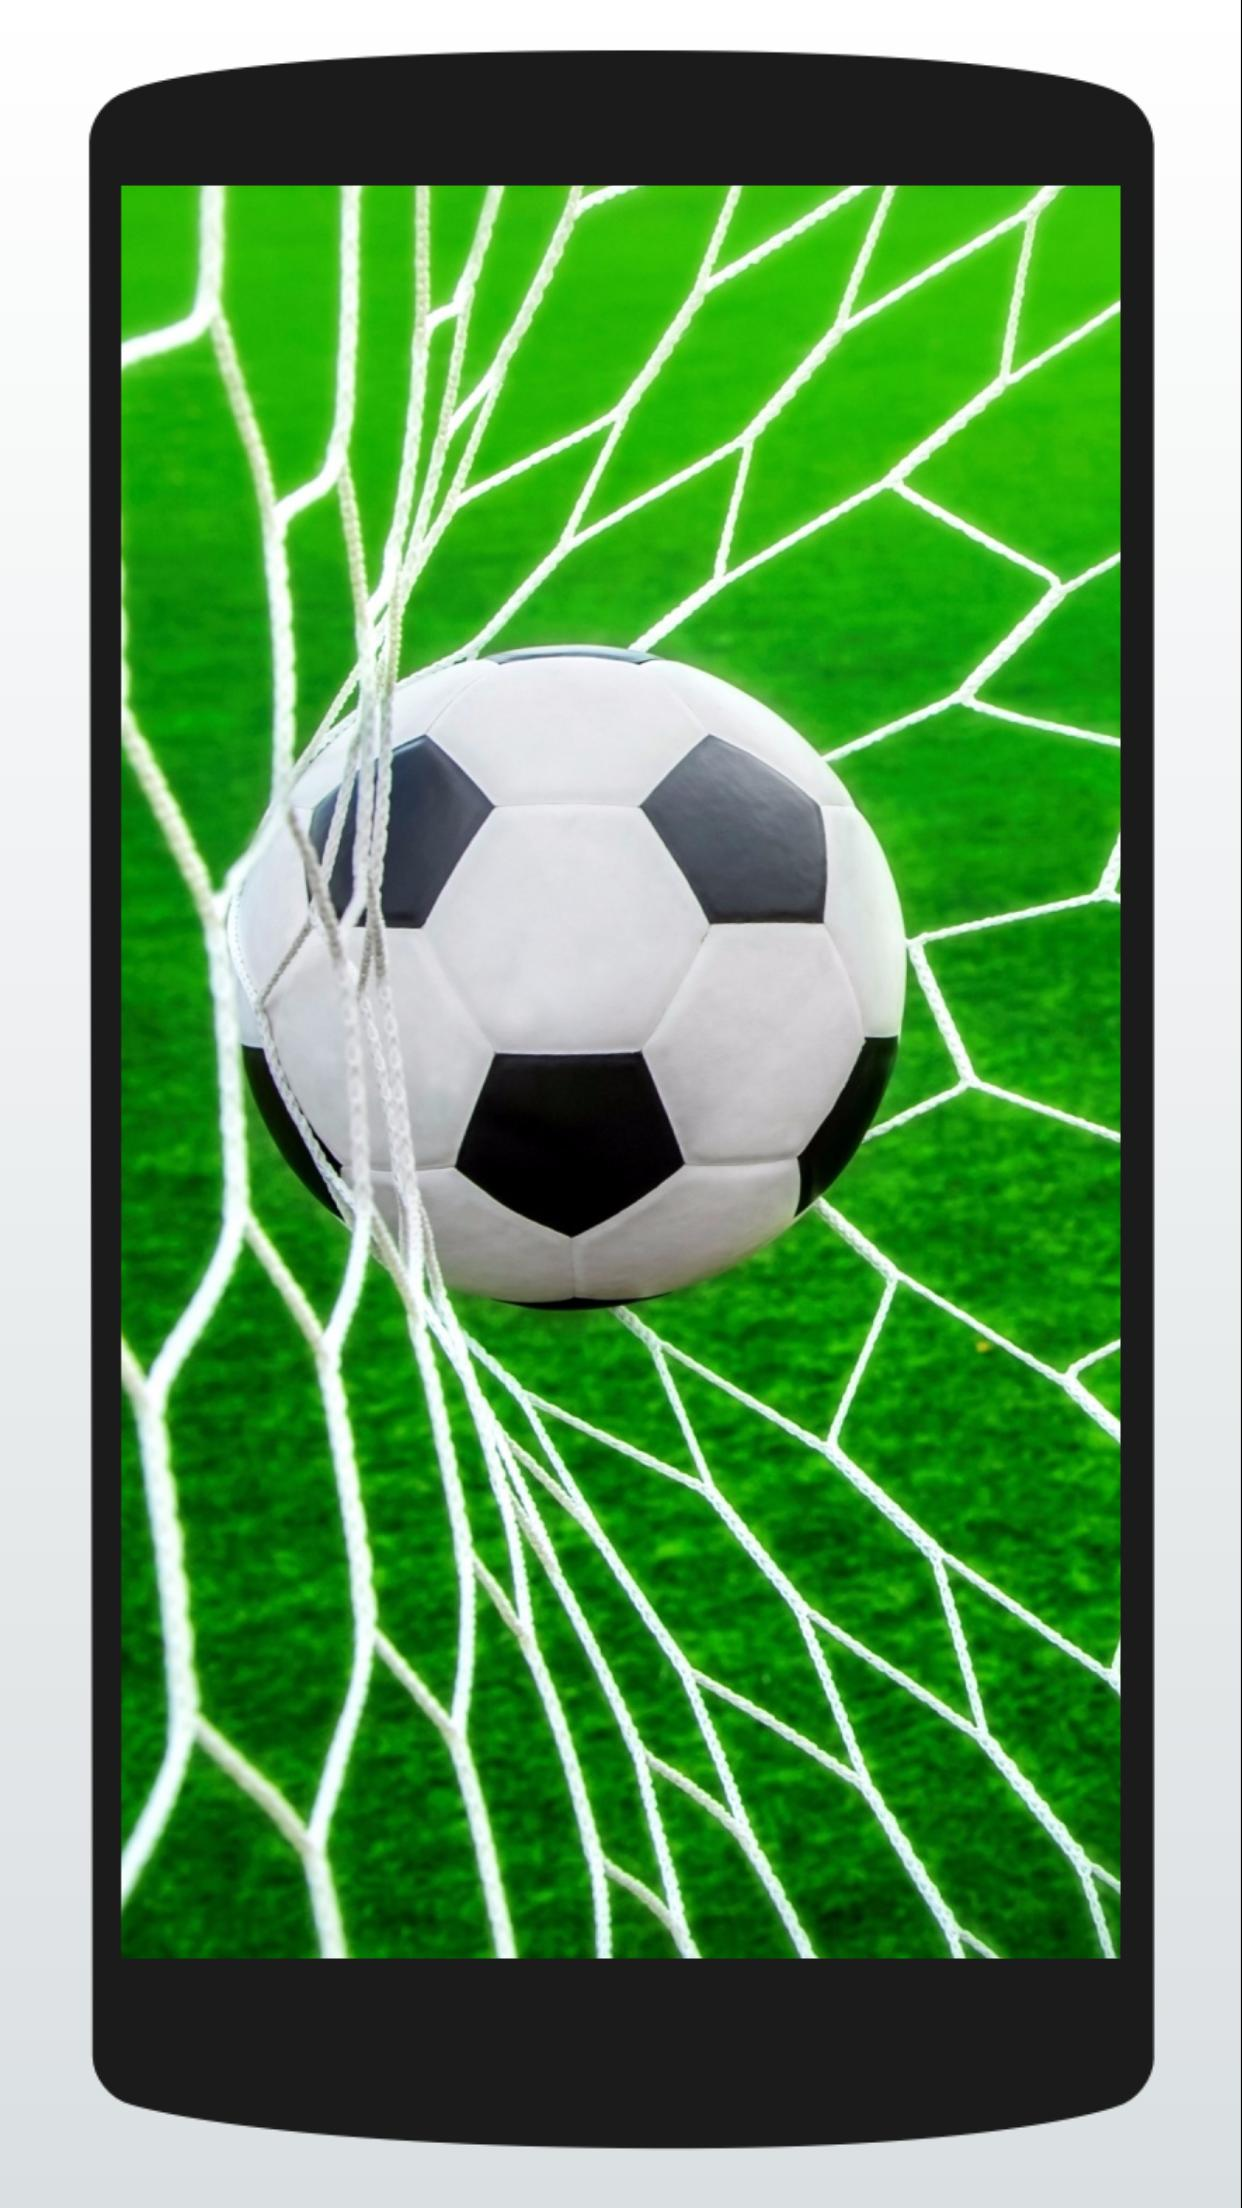 Hd Football Wallpapers For Android Apk Download